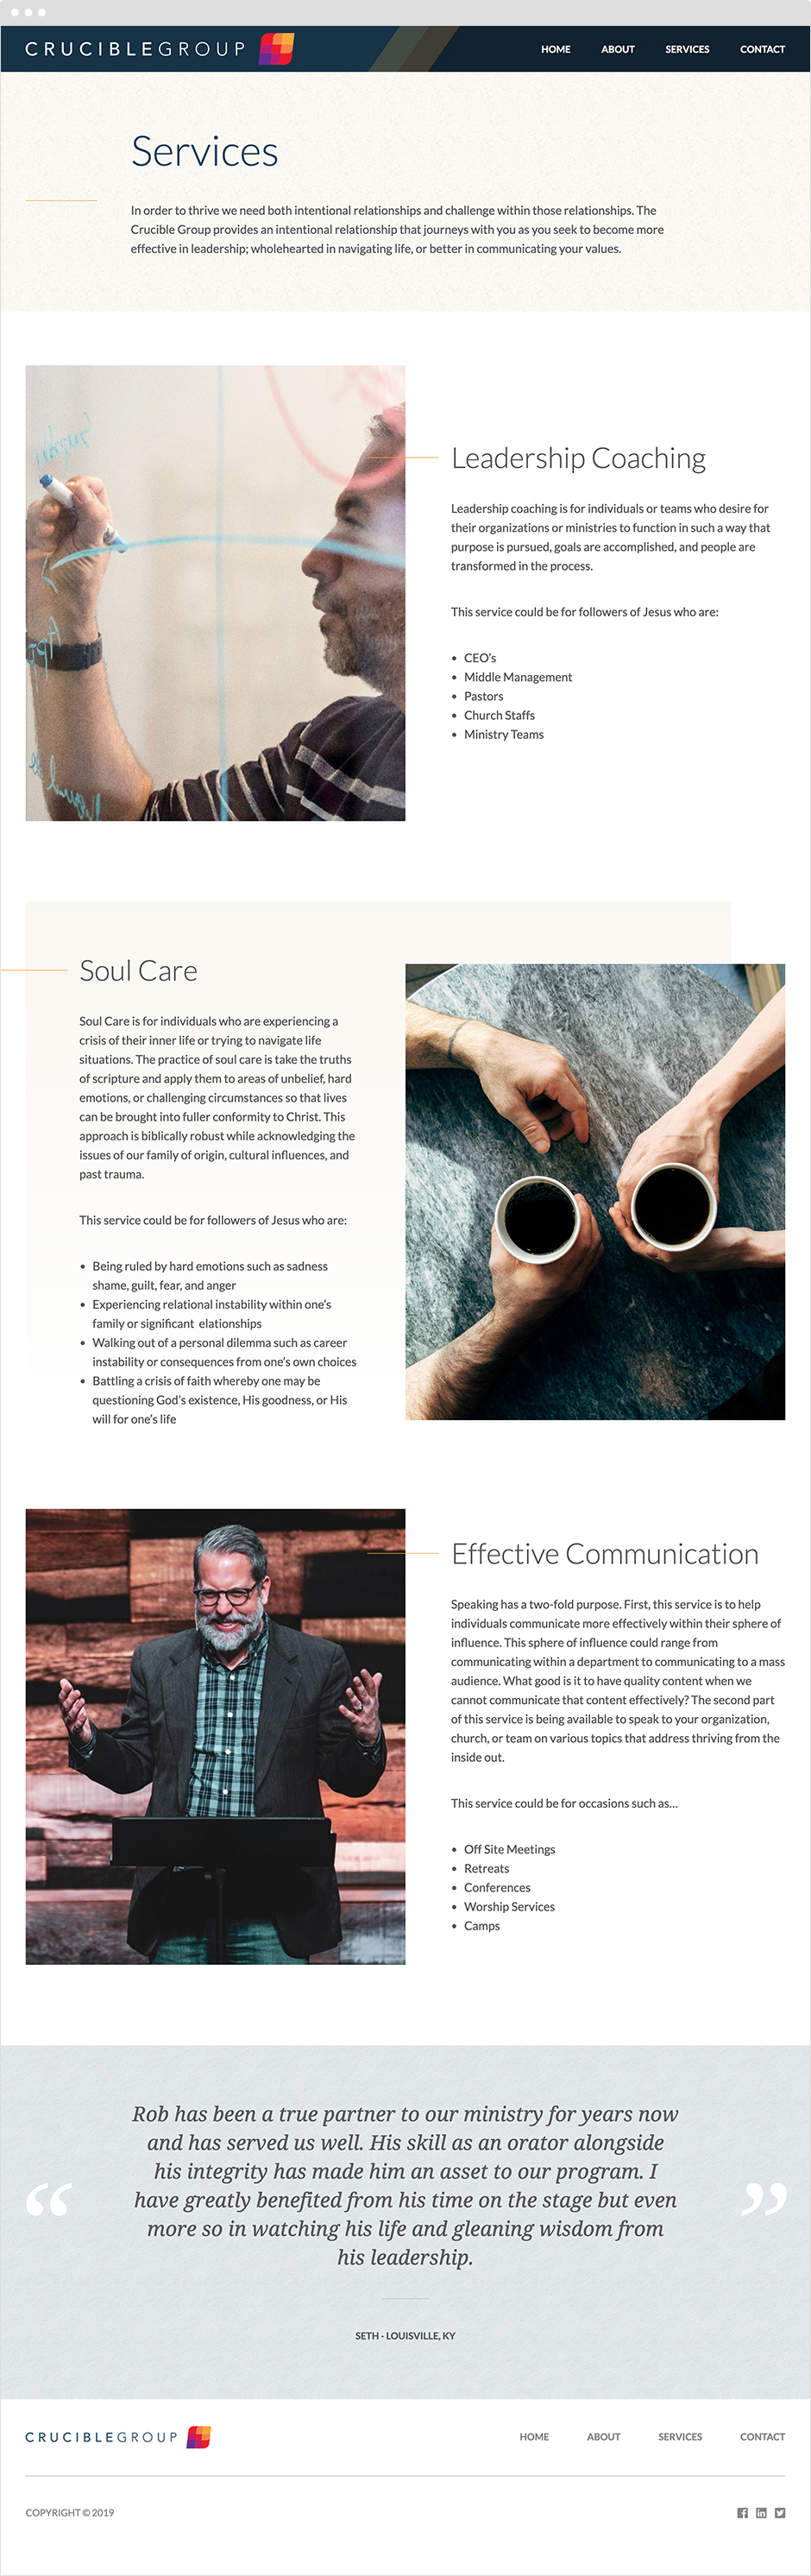 The Crucible Group Services Page Design